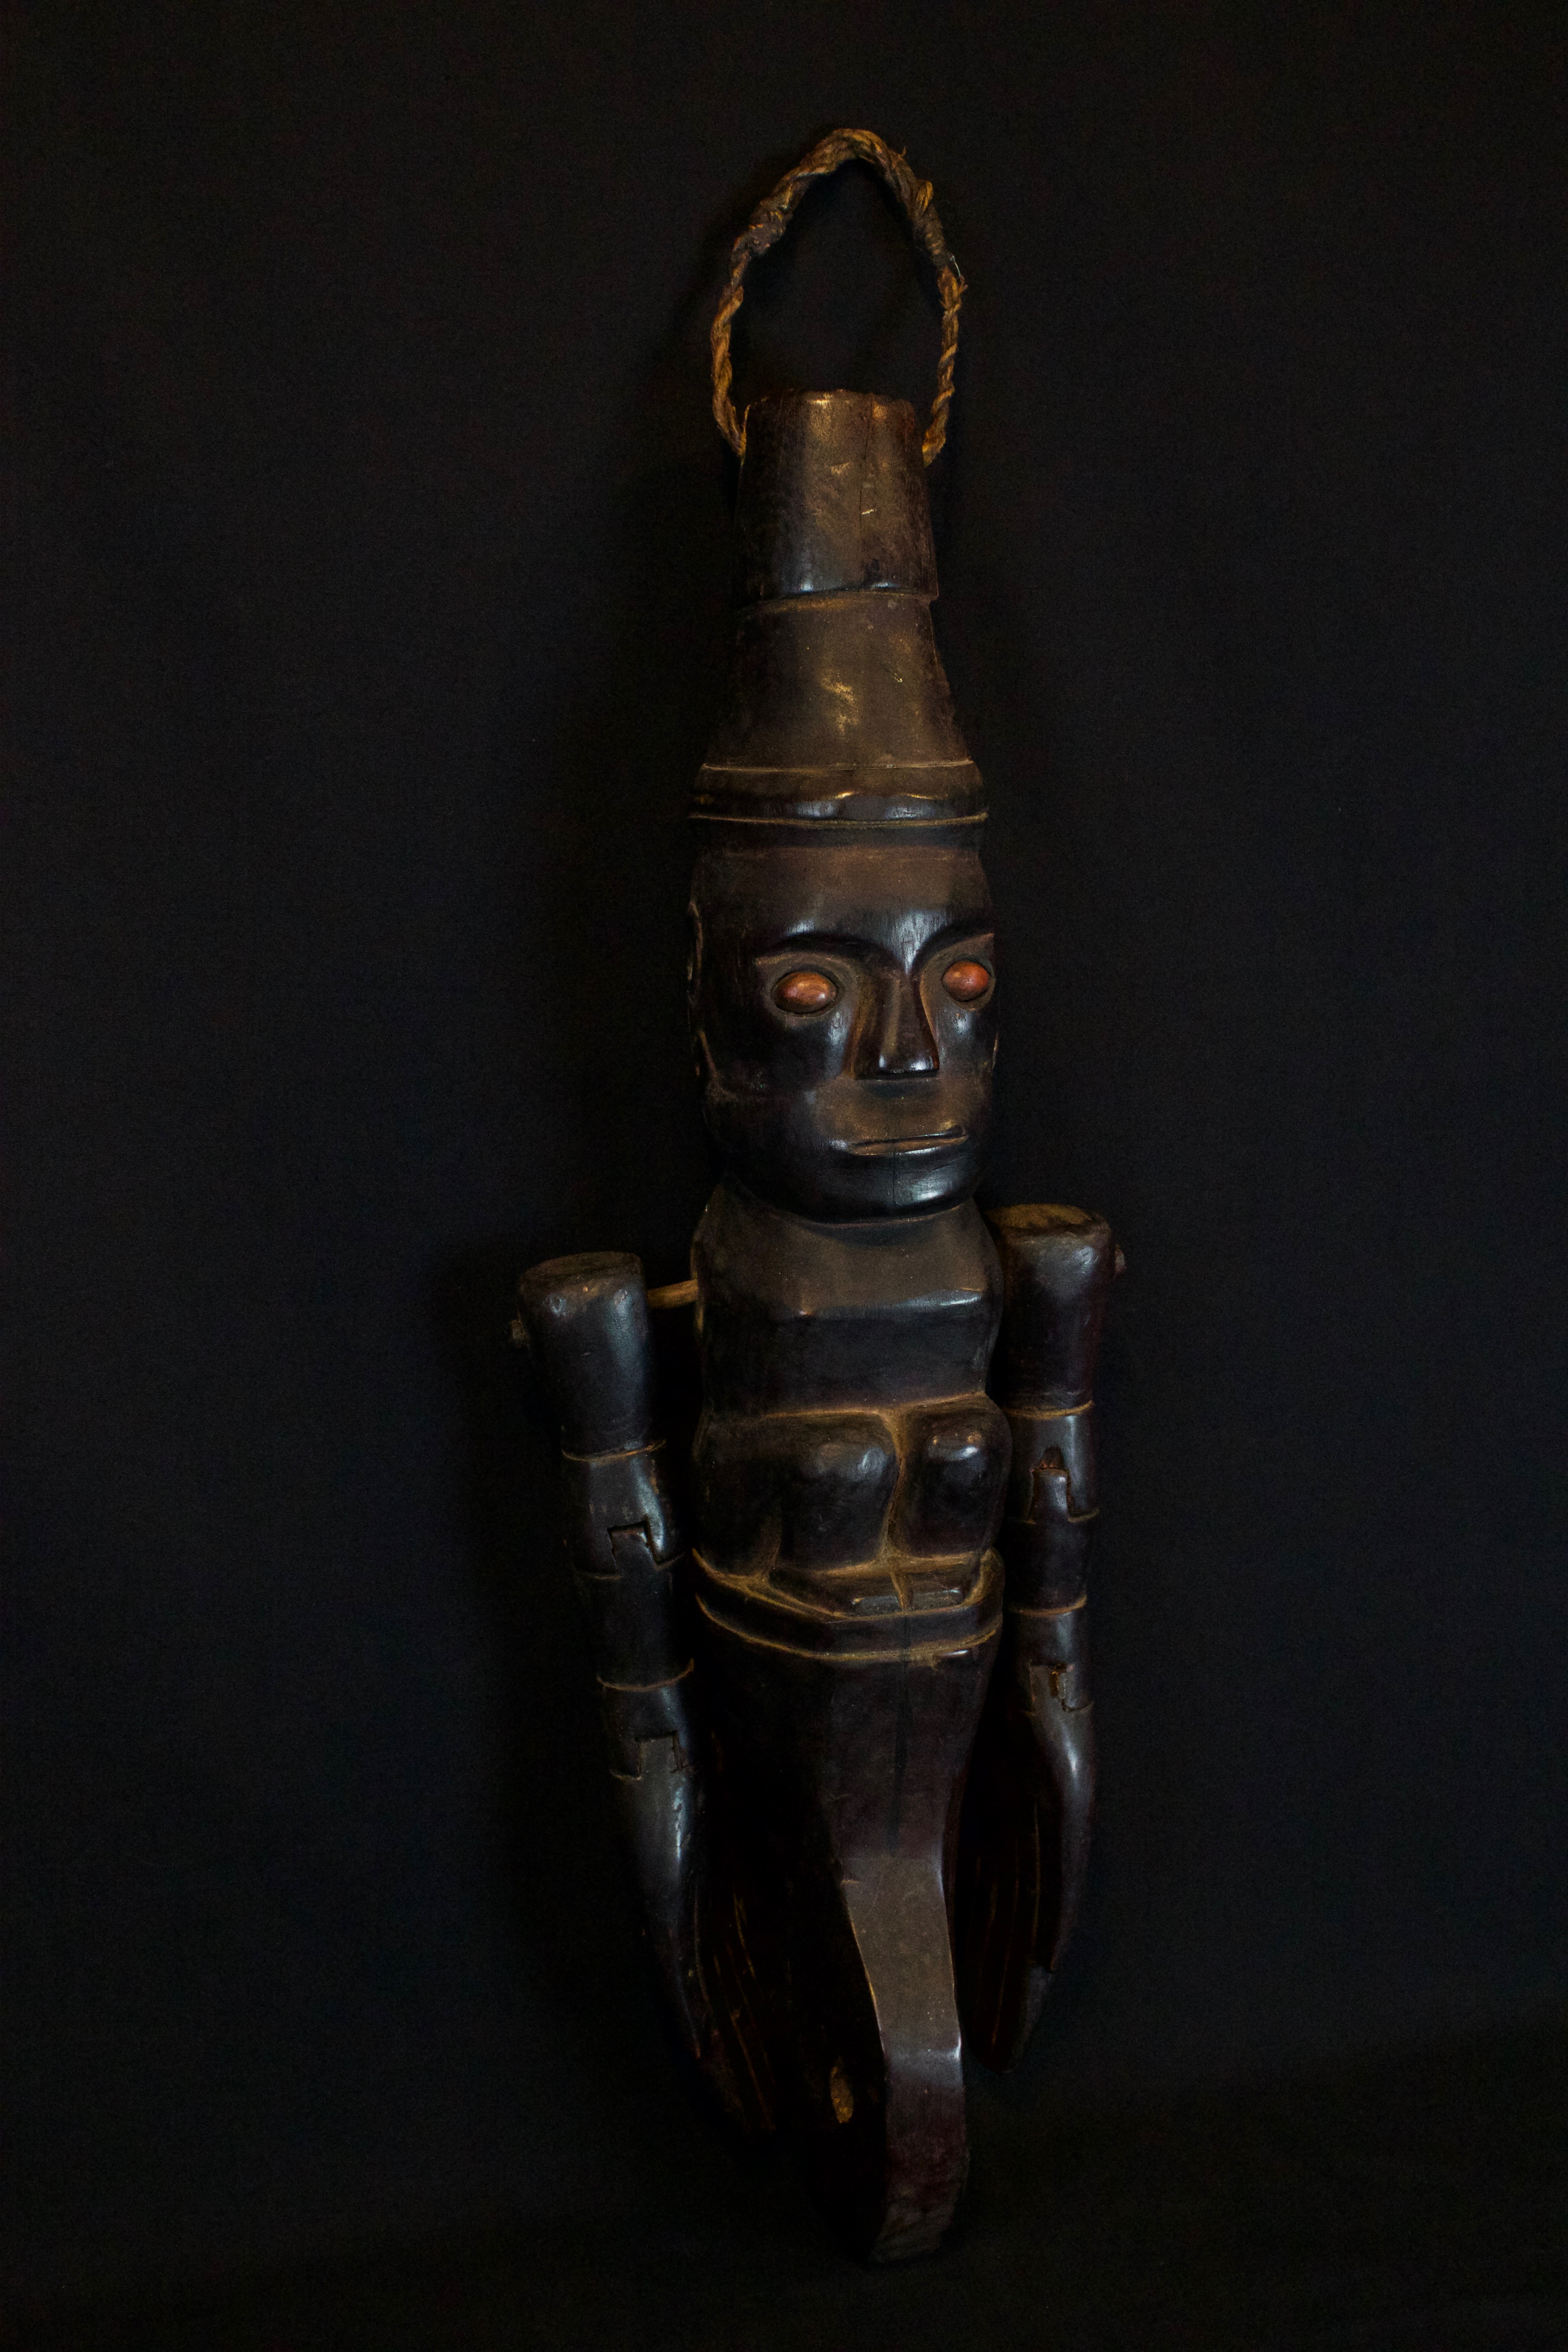 """Shaman Divining Effigy, Sumatra, Indonesia, Karo village, Batak tribe, Late 19th c, Wood, pigment, fiber cord, smooth patina from use and age. Used to predict the future. 20"""" x 9"""" x 6"""", $1450."""